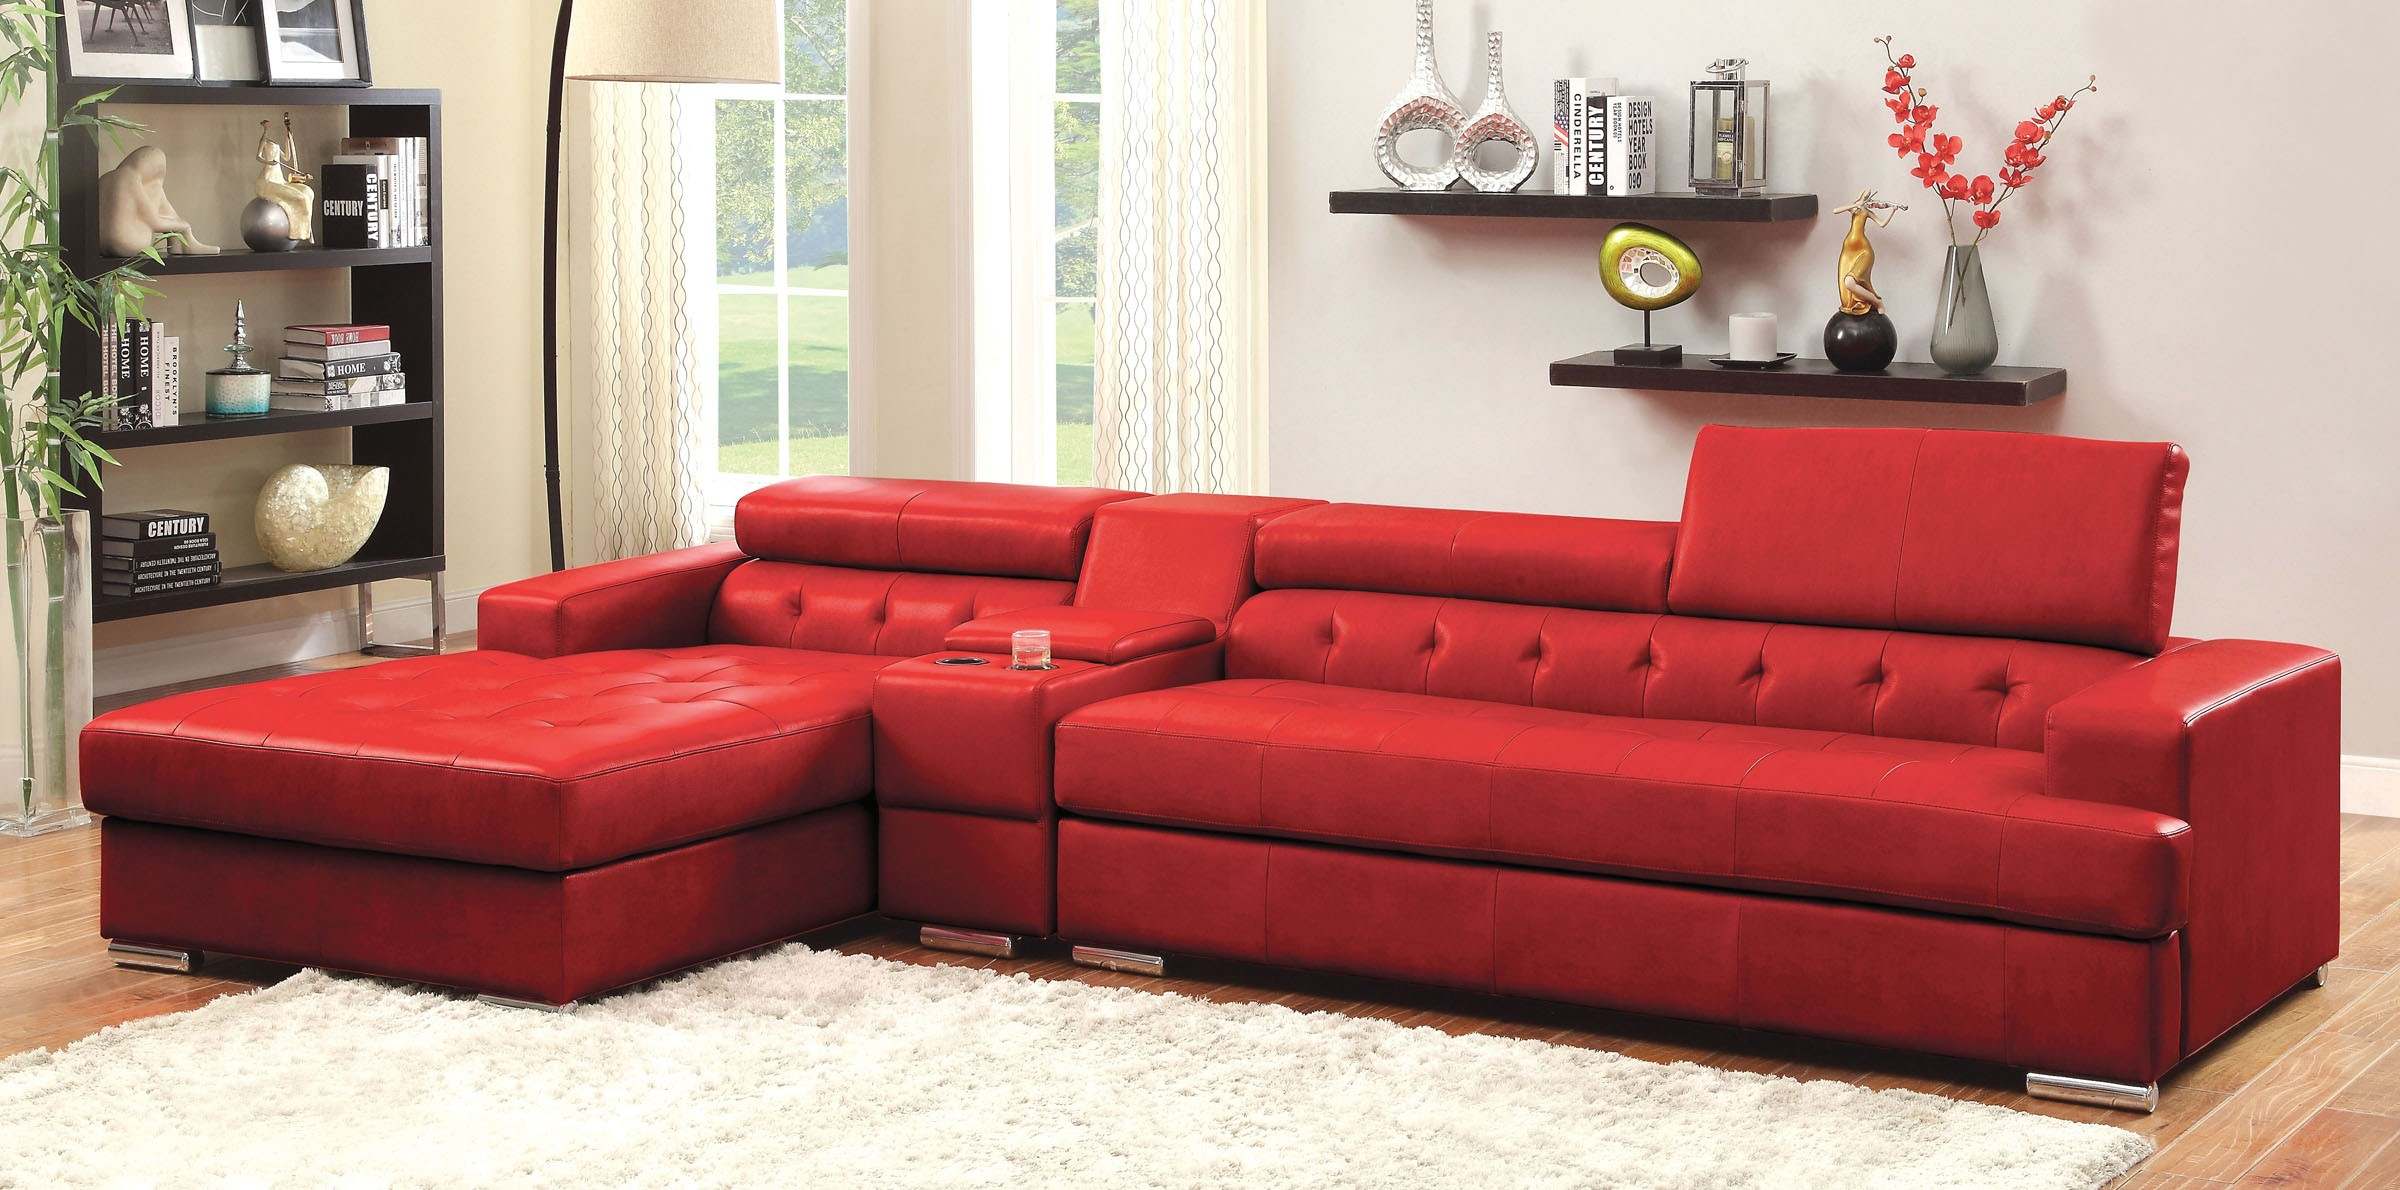 Modern Contemporary Sectional Sofa w Console T Cushion Tufted Red